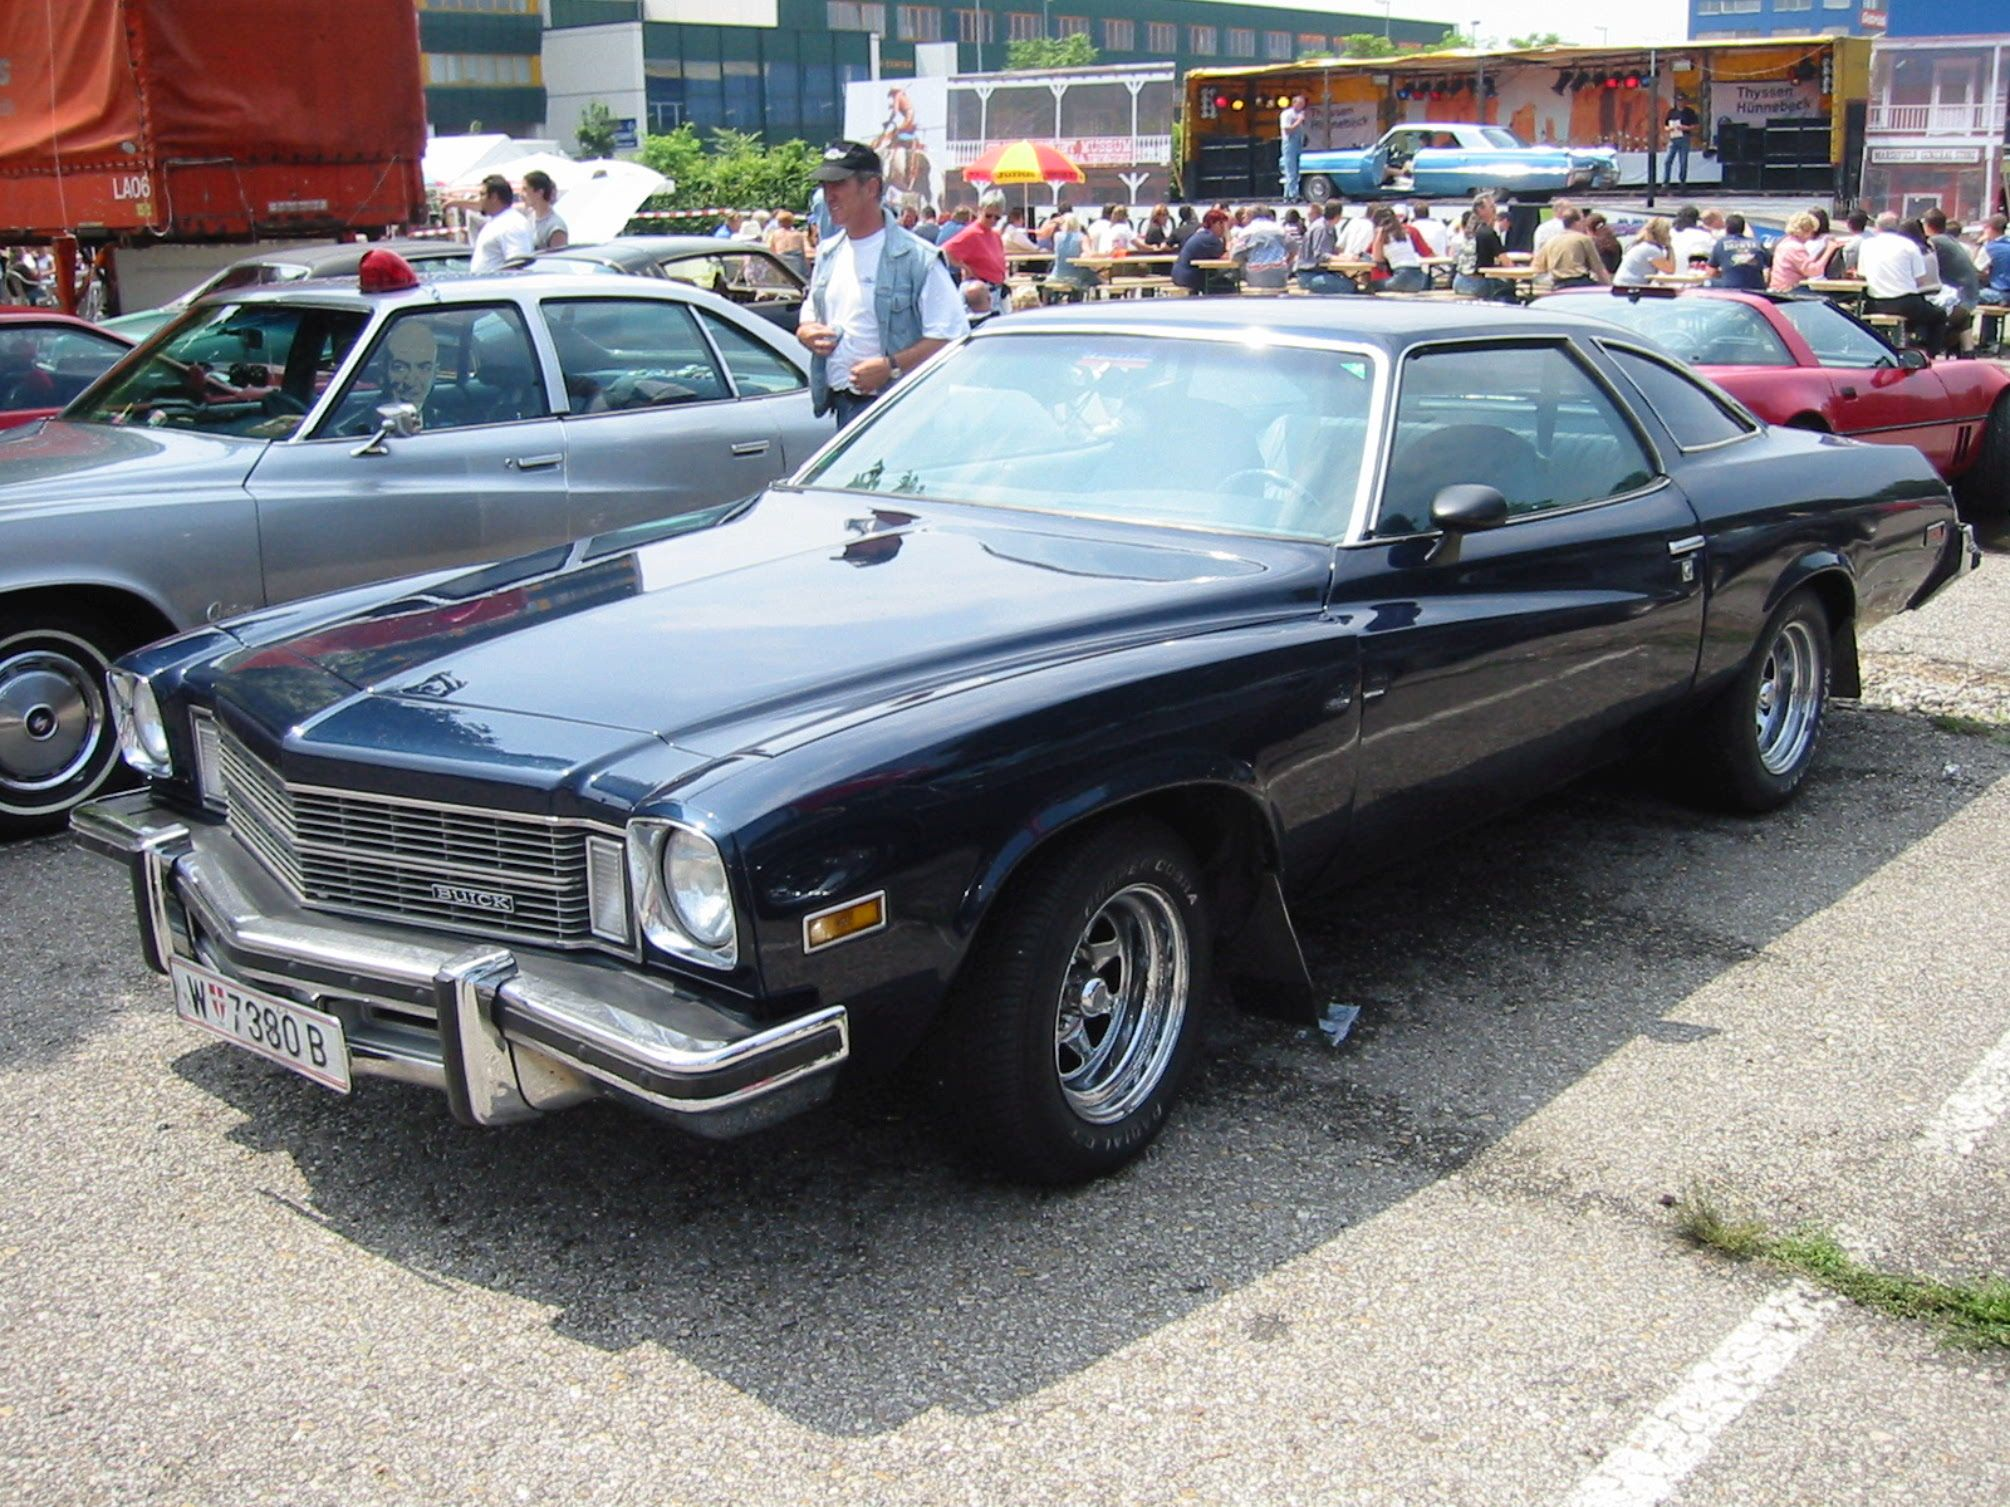 75 Buick Regal I Used To Have One Just Like This Black With Red Interior Power Door Locks Power Windows Power Driver S Seat A Cool Cars Buick Regal Buick